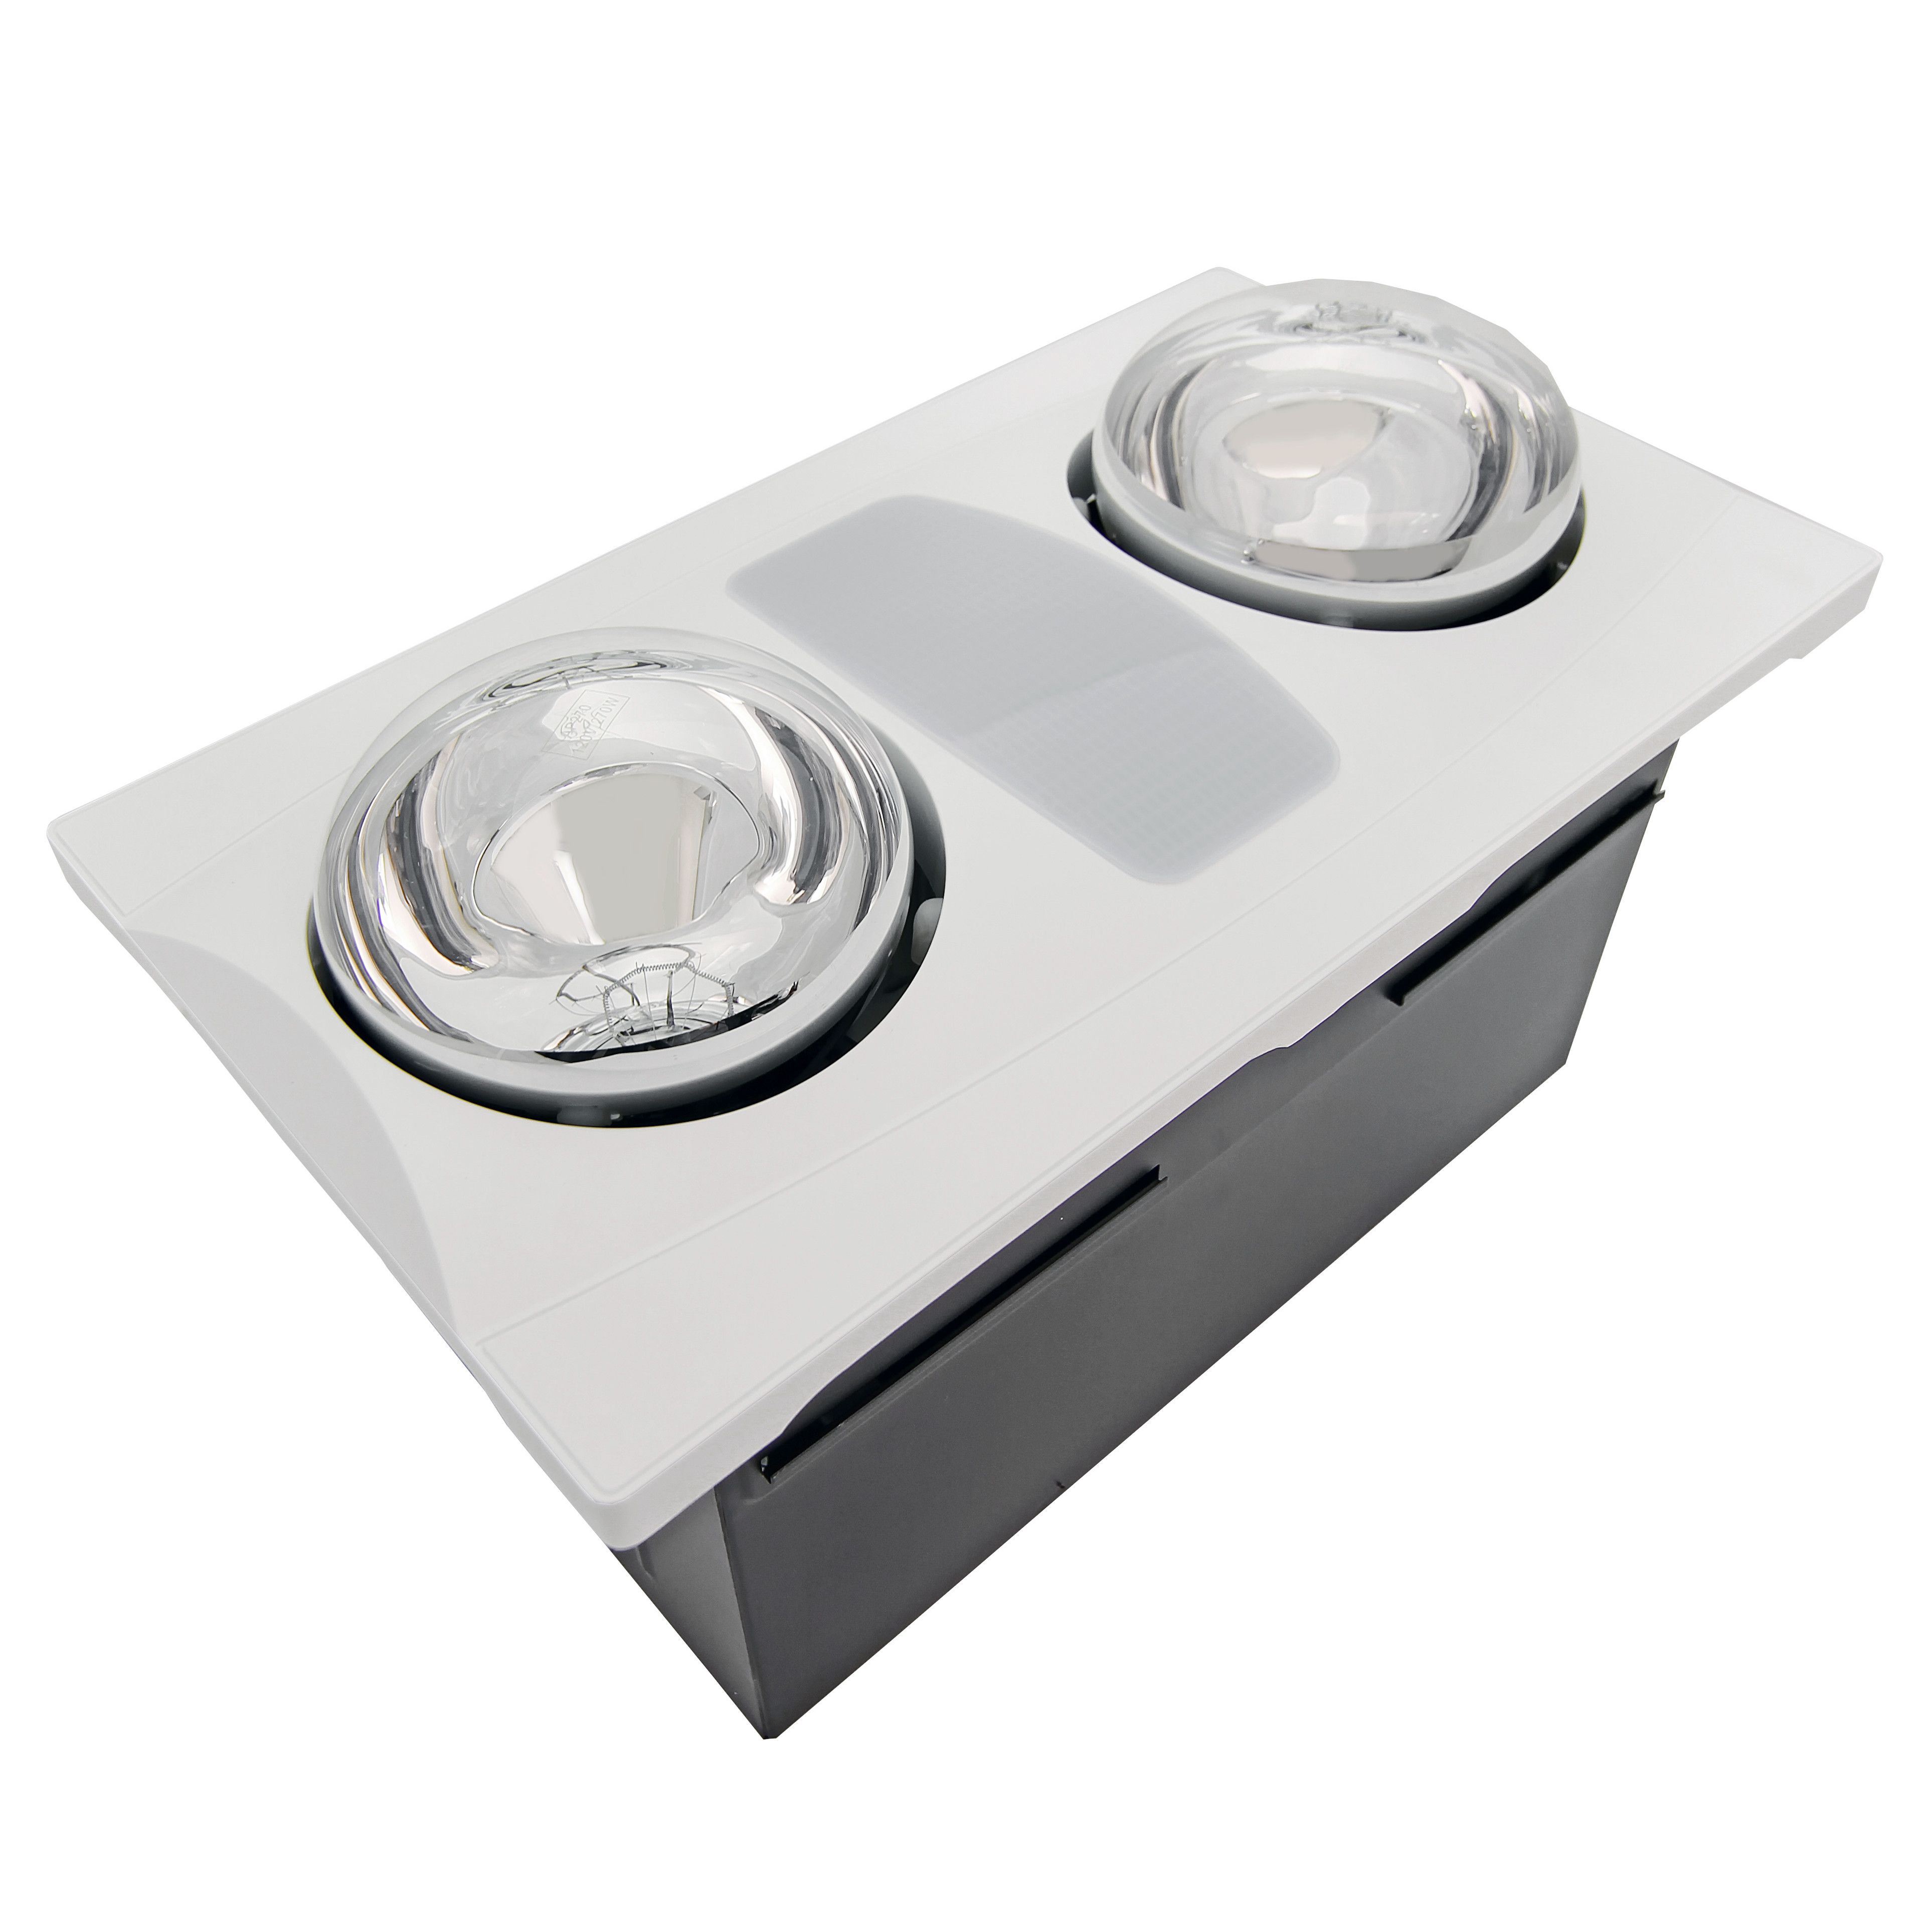 Bathroom Light Fan Heater Combo Bathroom Heater Bathroom Fan Light Bathroom Exhaust Fan